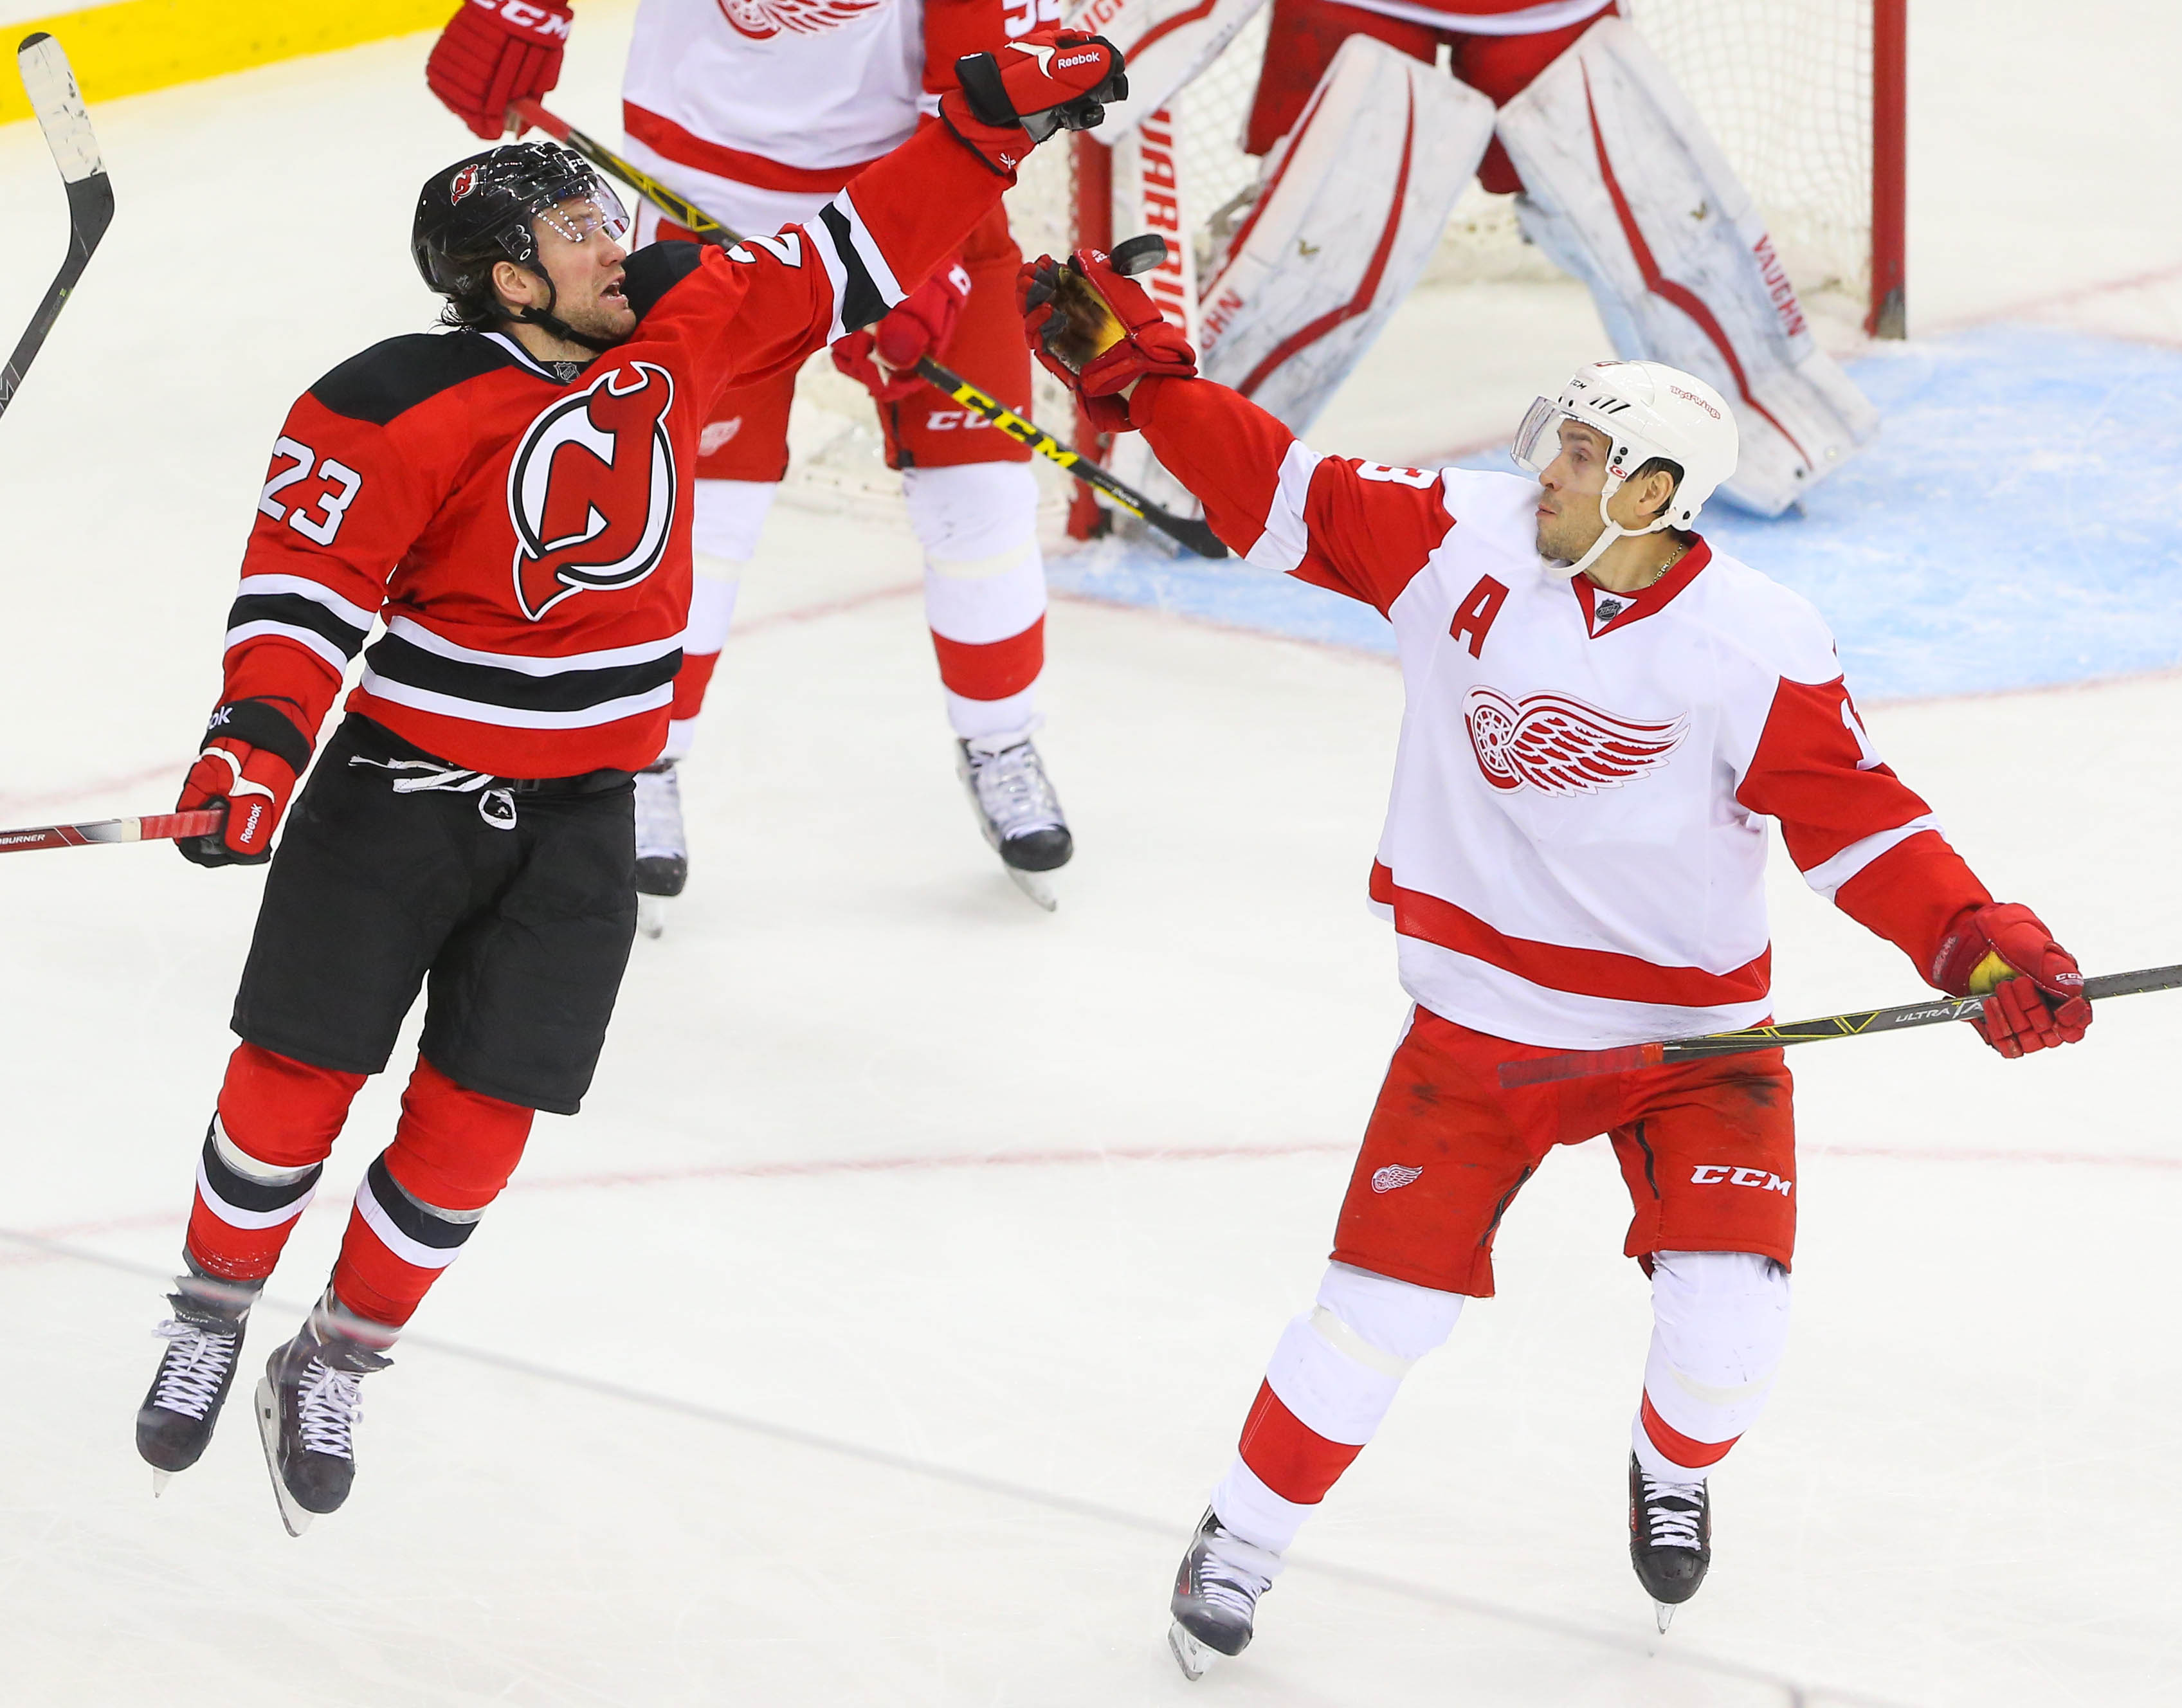 9037313-nhl-detroit-red-wings-at-new-jersey-devils